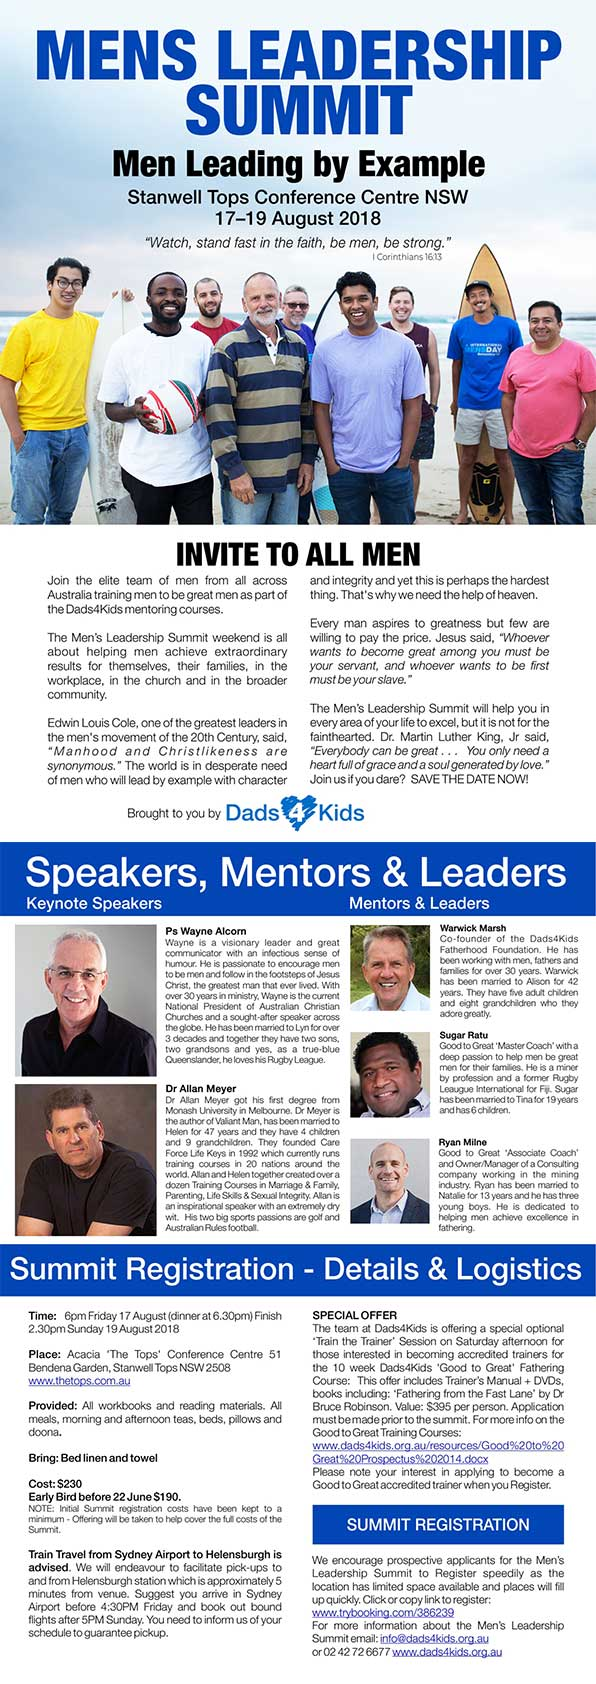 Mens Leadership Summit